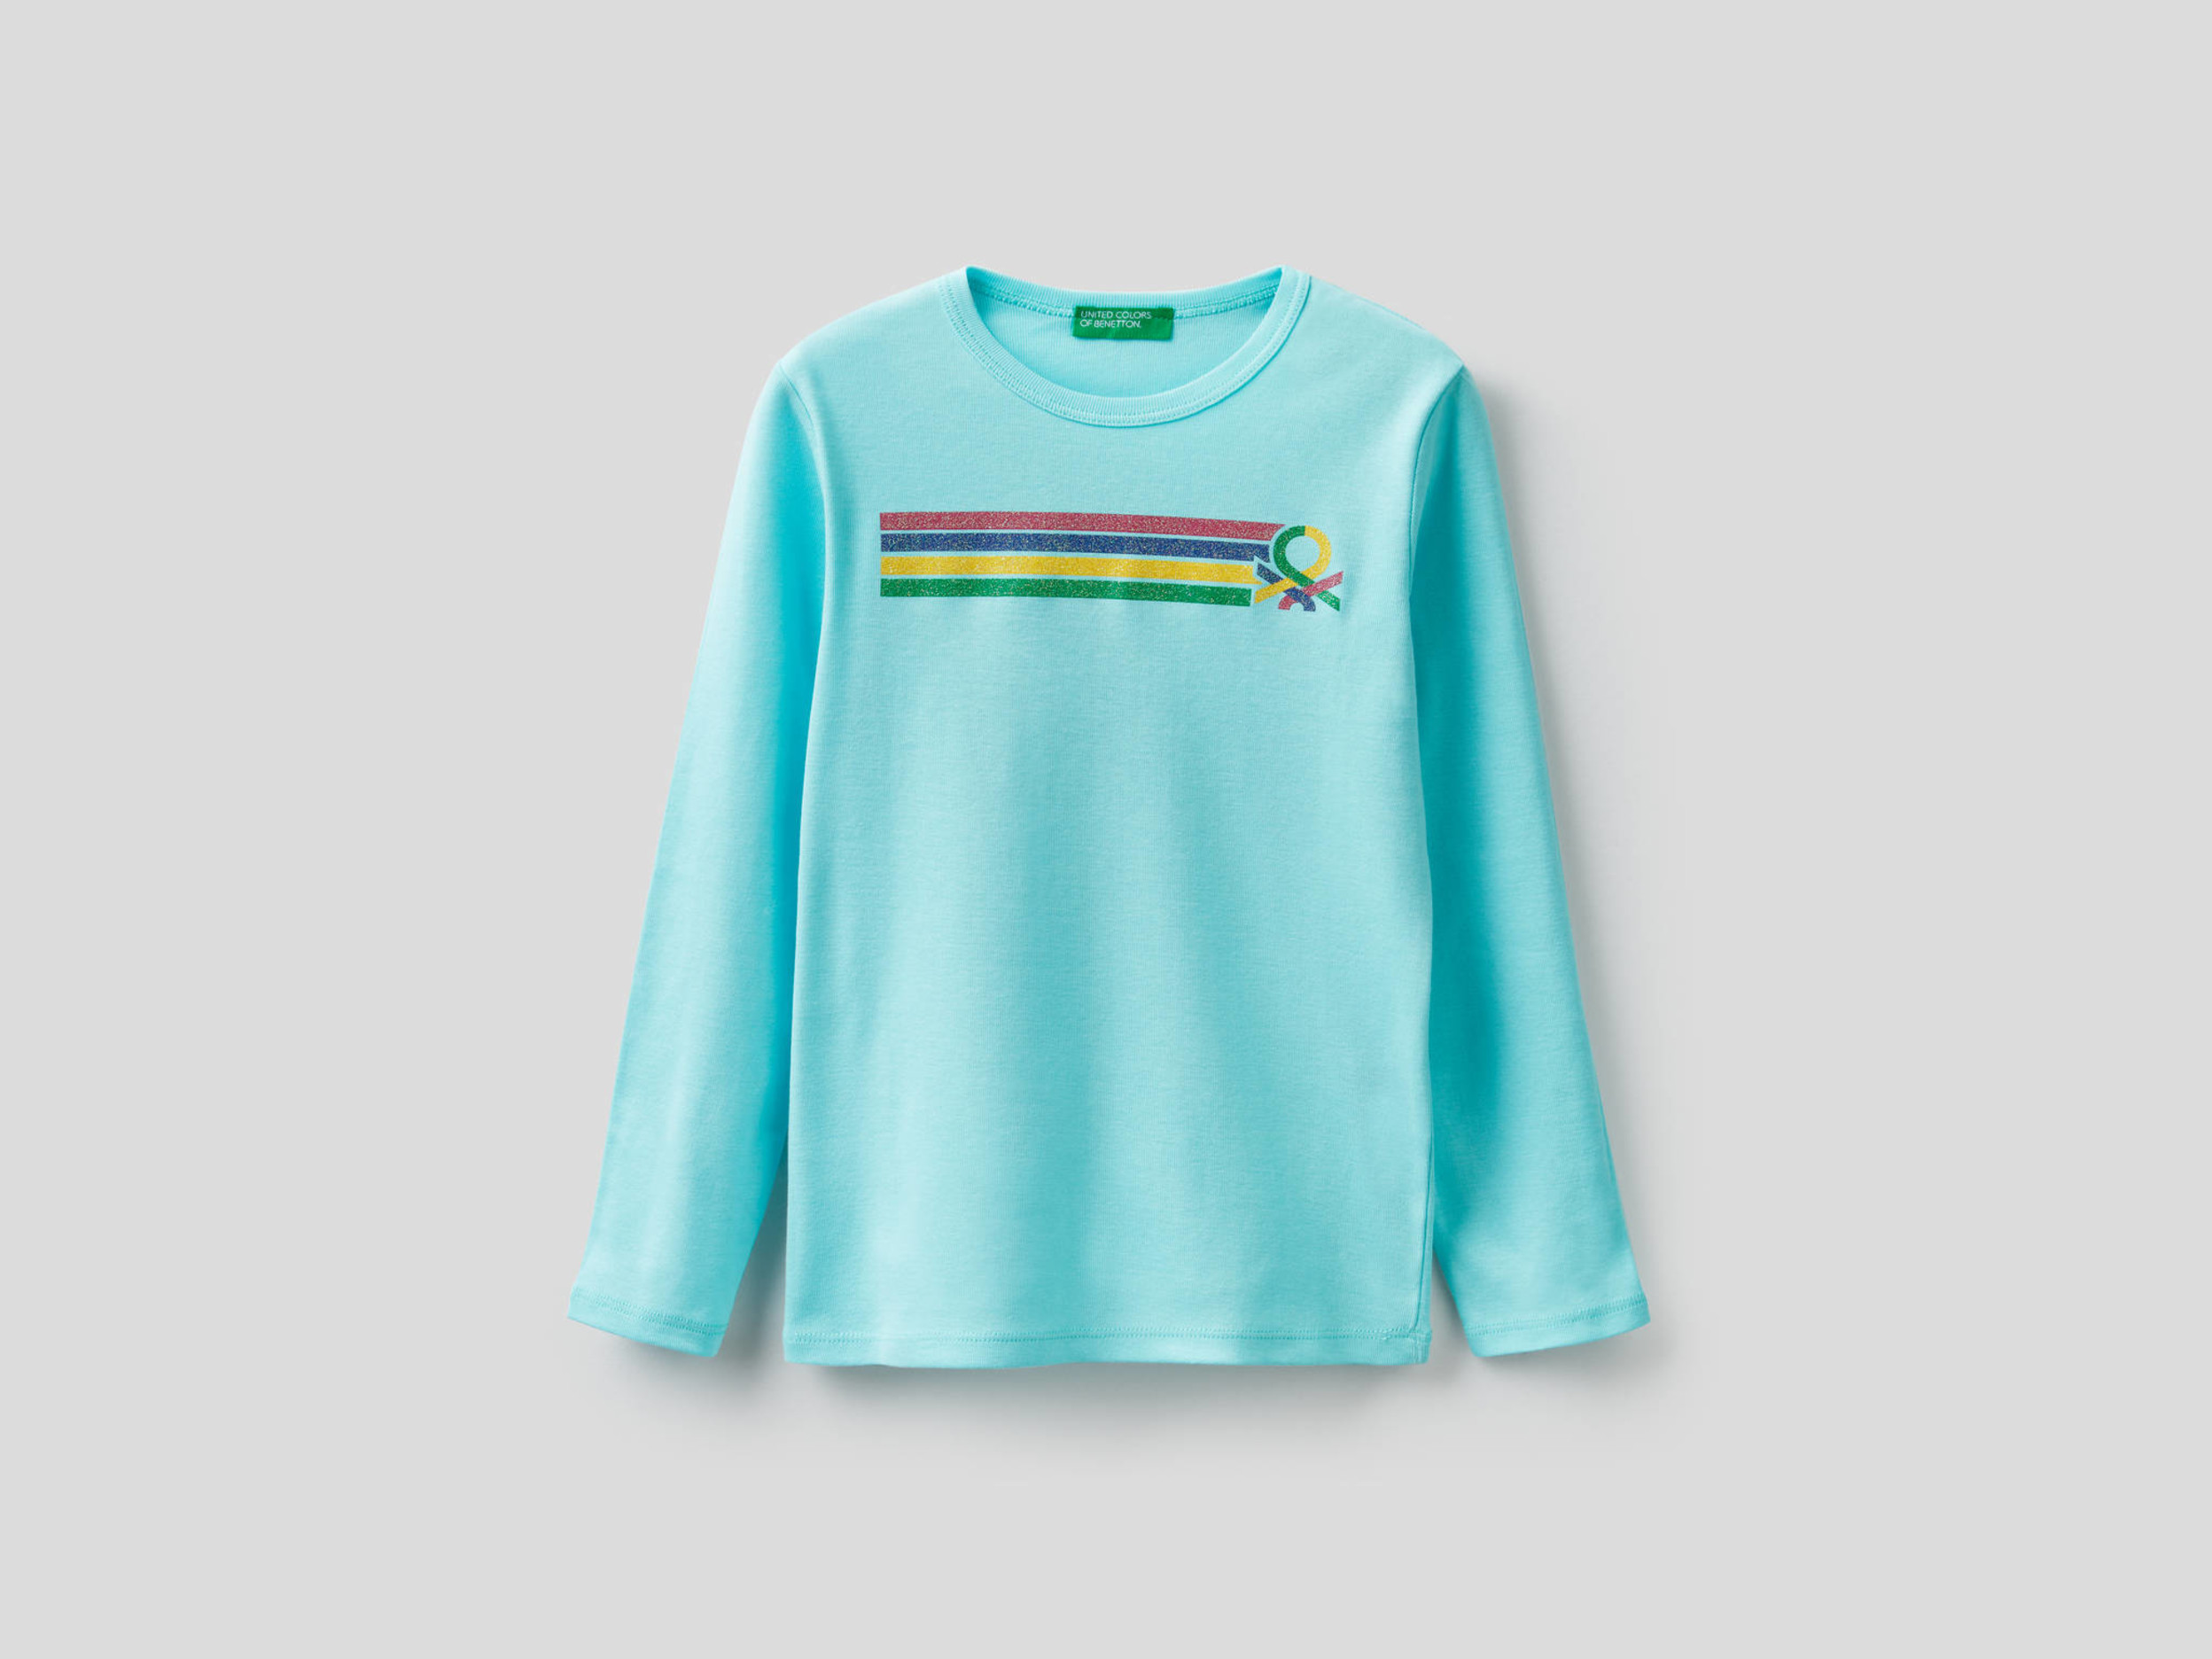 Benetton, Long Sleeve T-shirt With Print, size , Turquoise, Kids